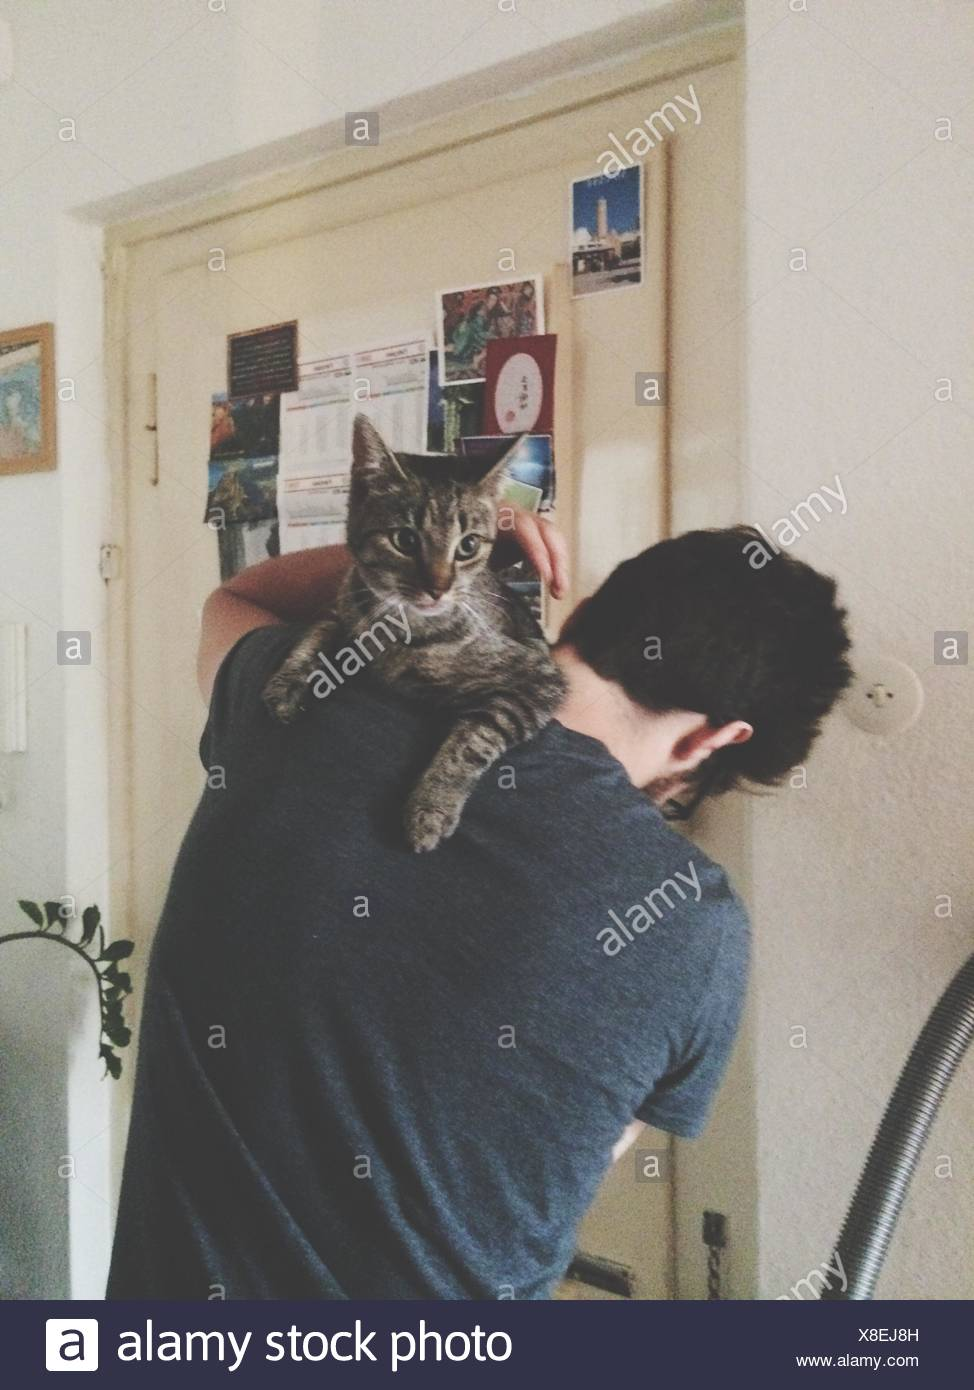 Rear View Of A Man Carrying Cat - Stock Image